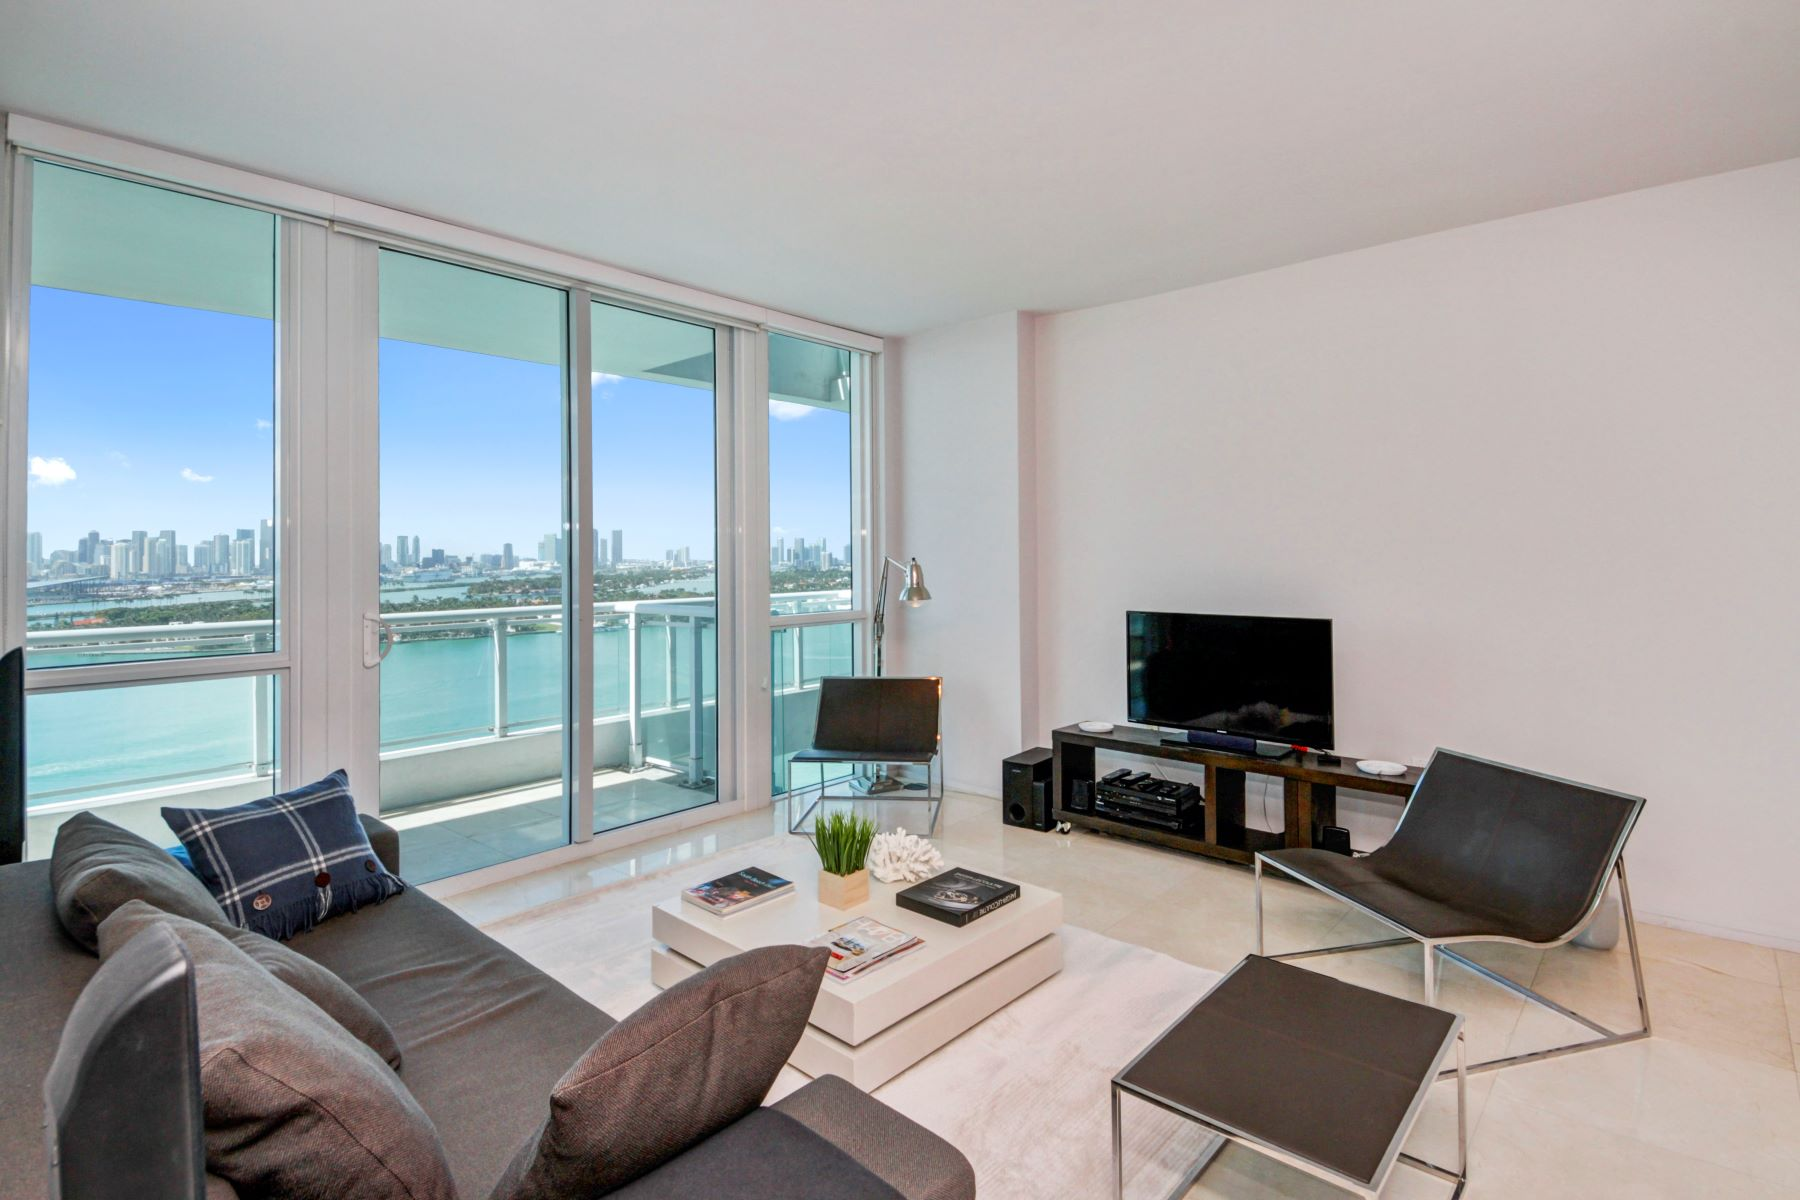 Condominium for Sale at 540 West Ave 540 West Ave 1812, Miami Beach, Florida, 33139 United States